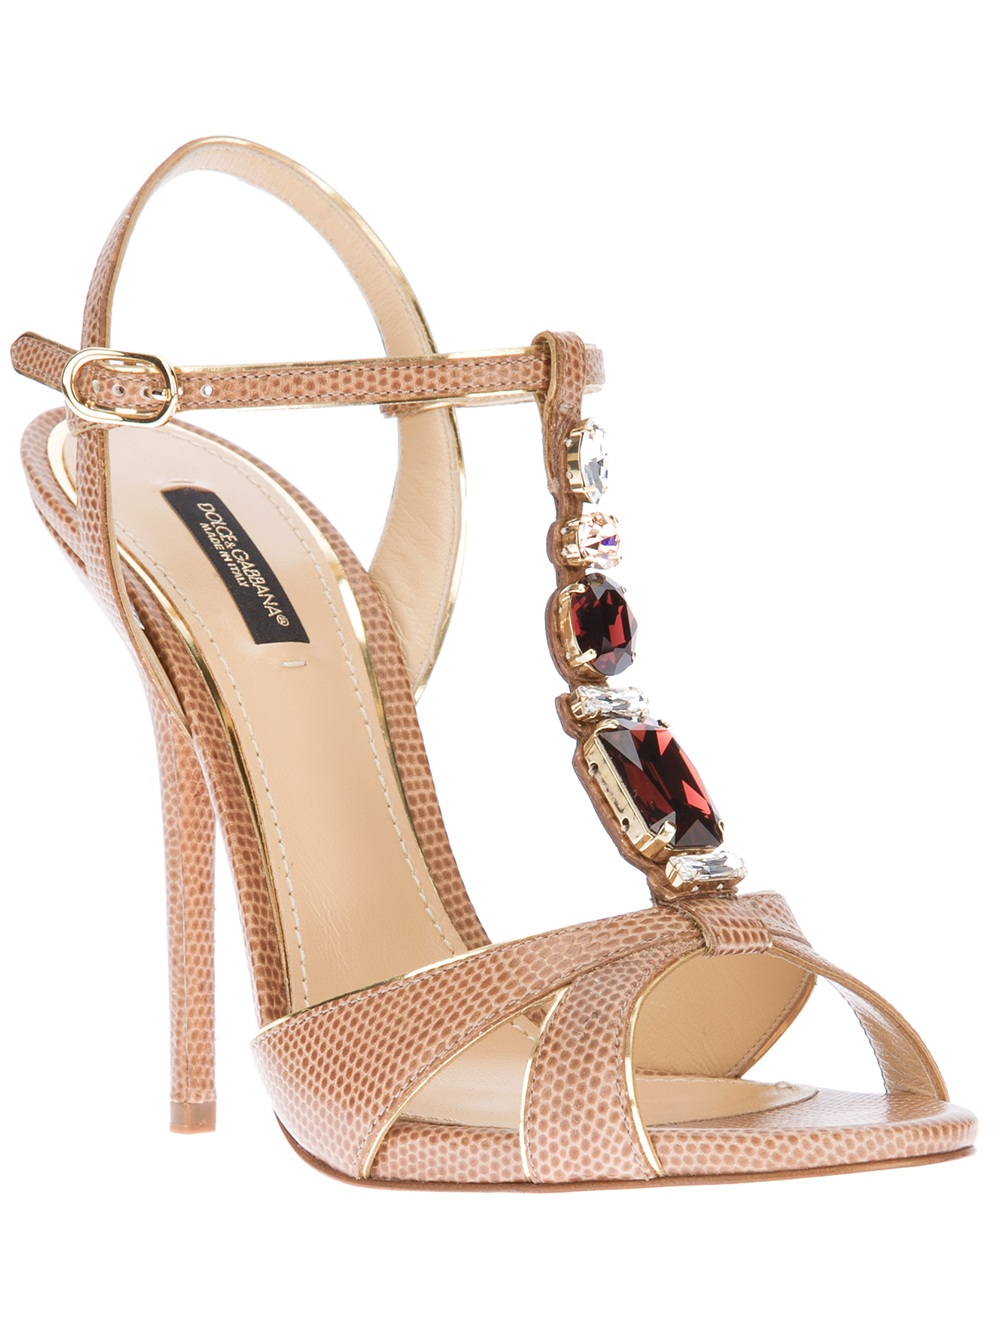 bd6e9f29b2a Lyst - Dolce   Gabbana Embellished Print Sandal in Natural